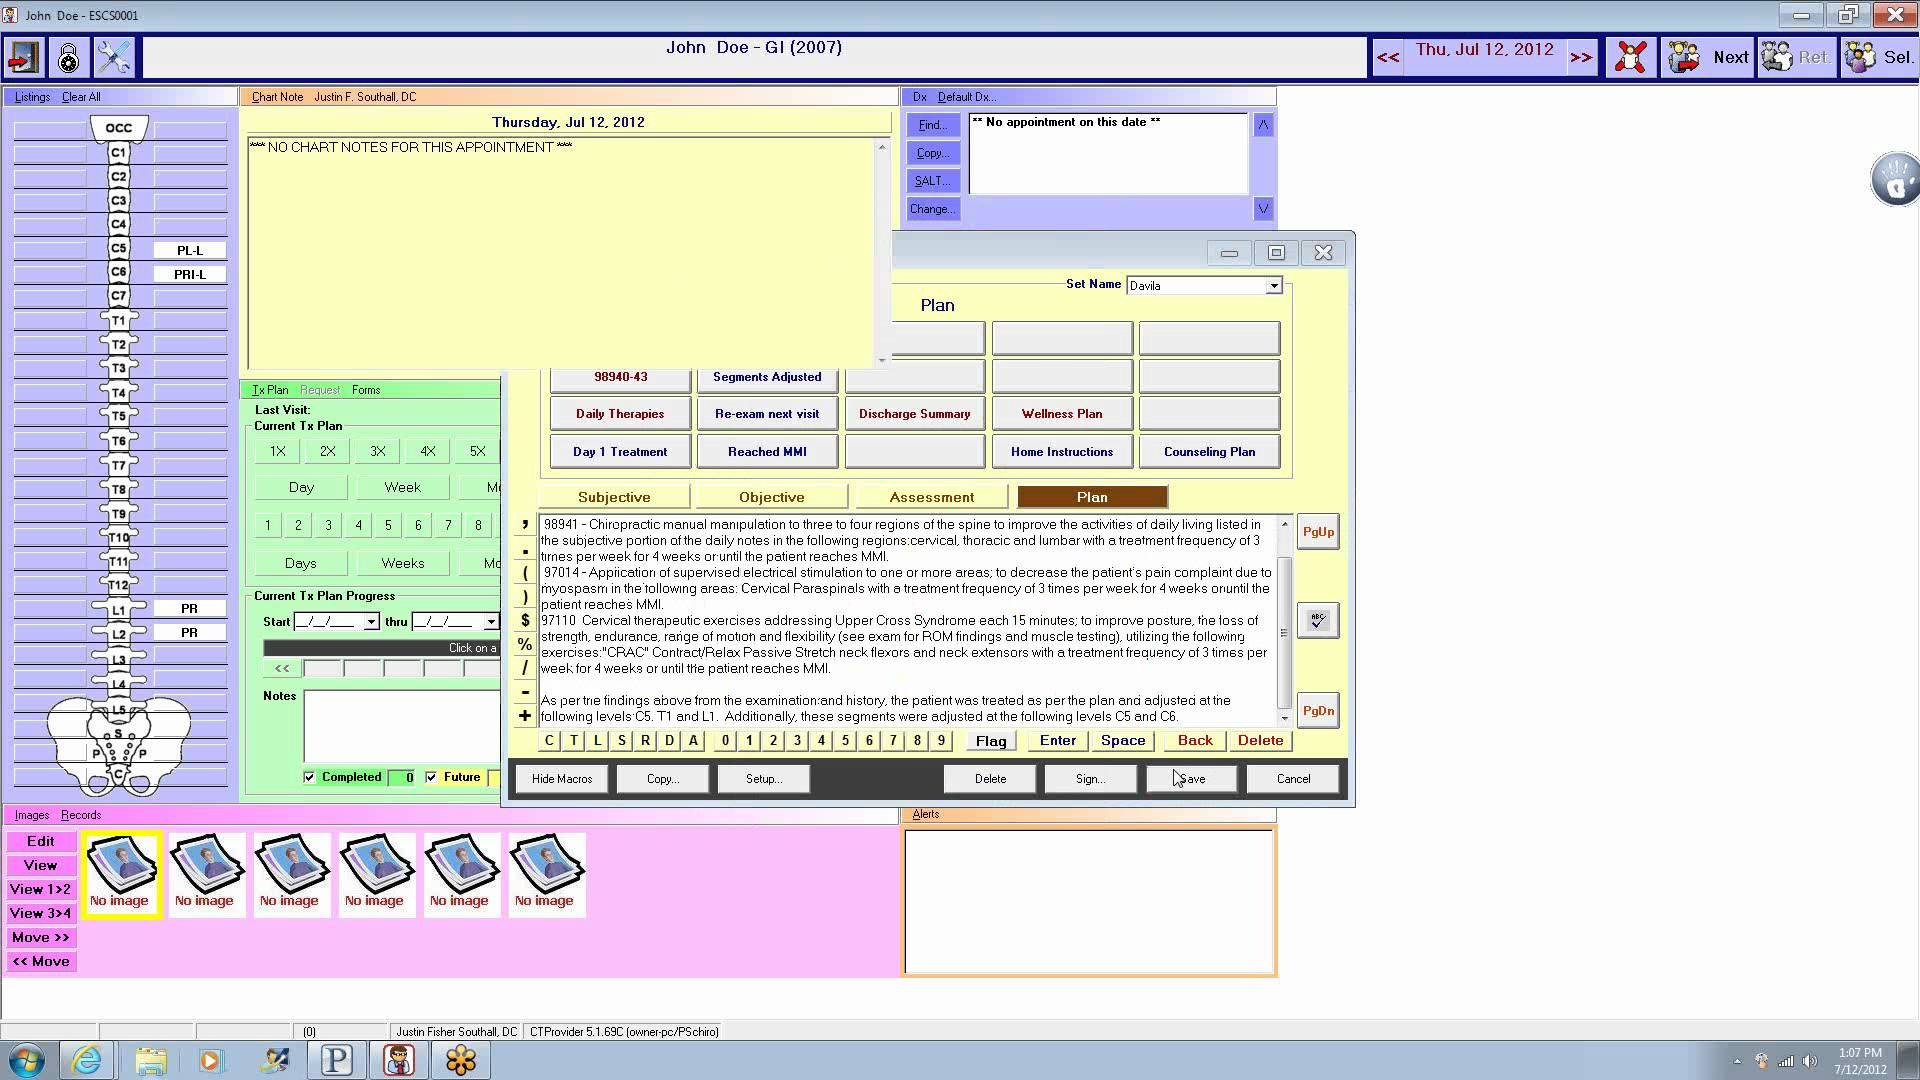 Chirotouch Emr Software  Reviews  Pricing  Ehrreviews For Chiropractic Travel Card Template